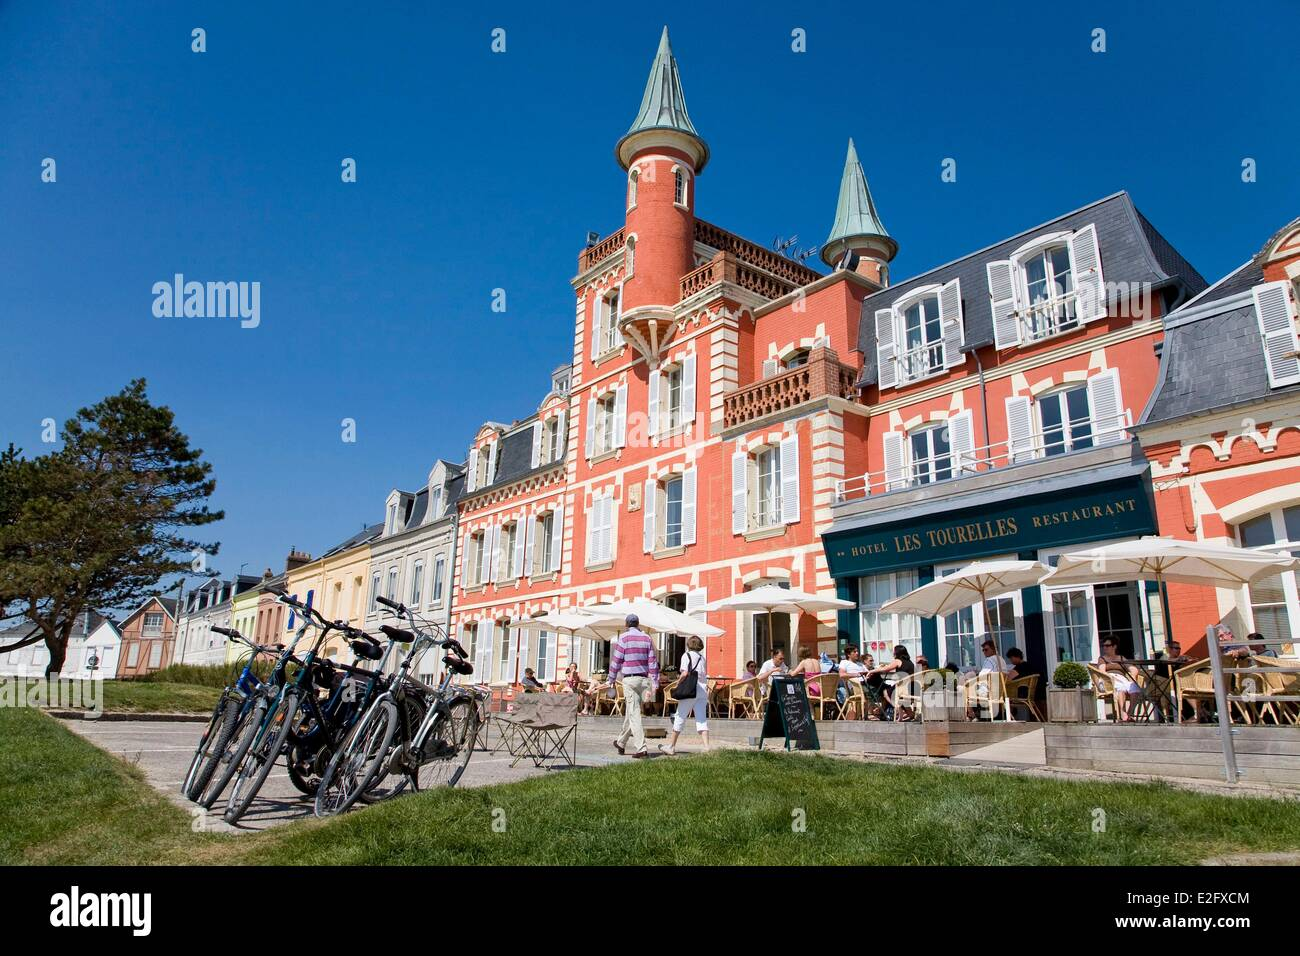 france somme baie de somme le crotoy les tourelles hotel in the stock photo royalty free image. Black Bedroom Furniture Sets. Home Design Ideas